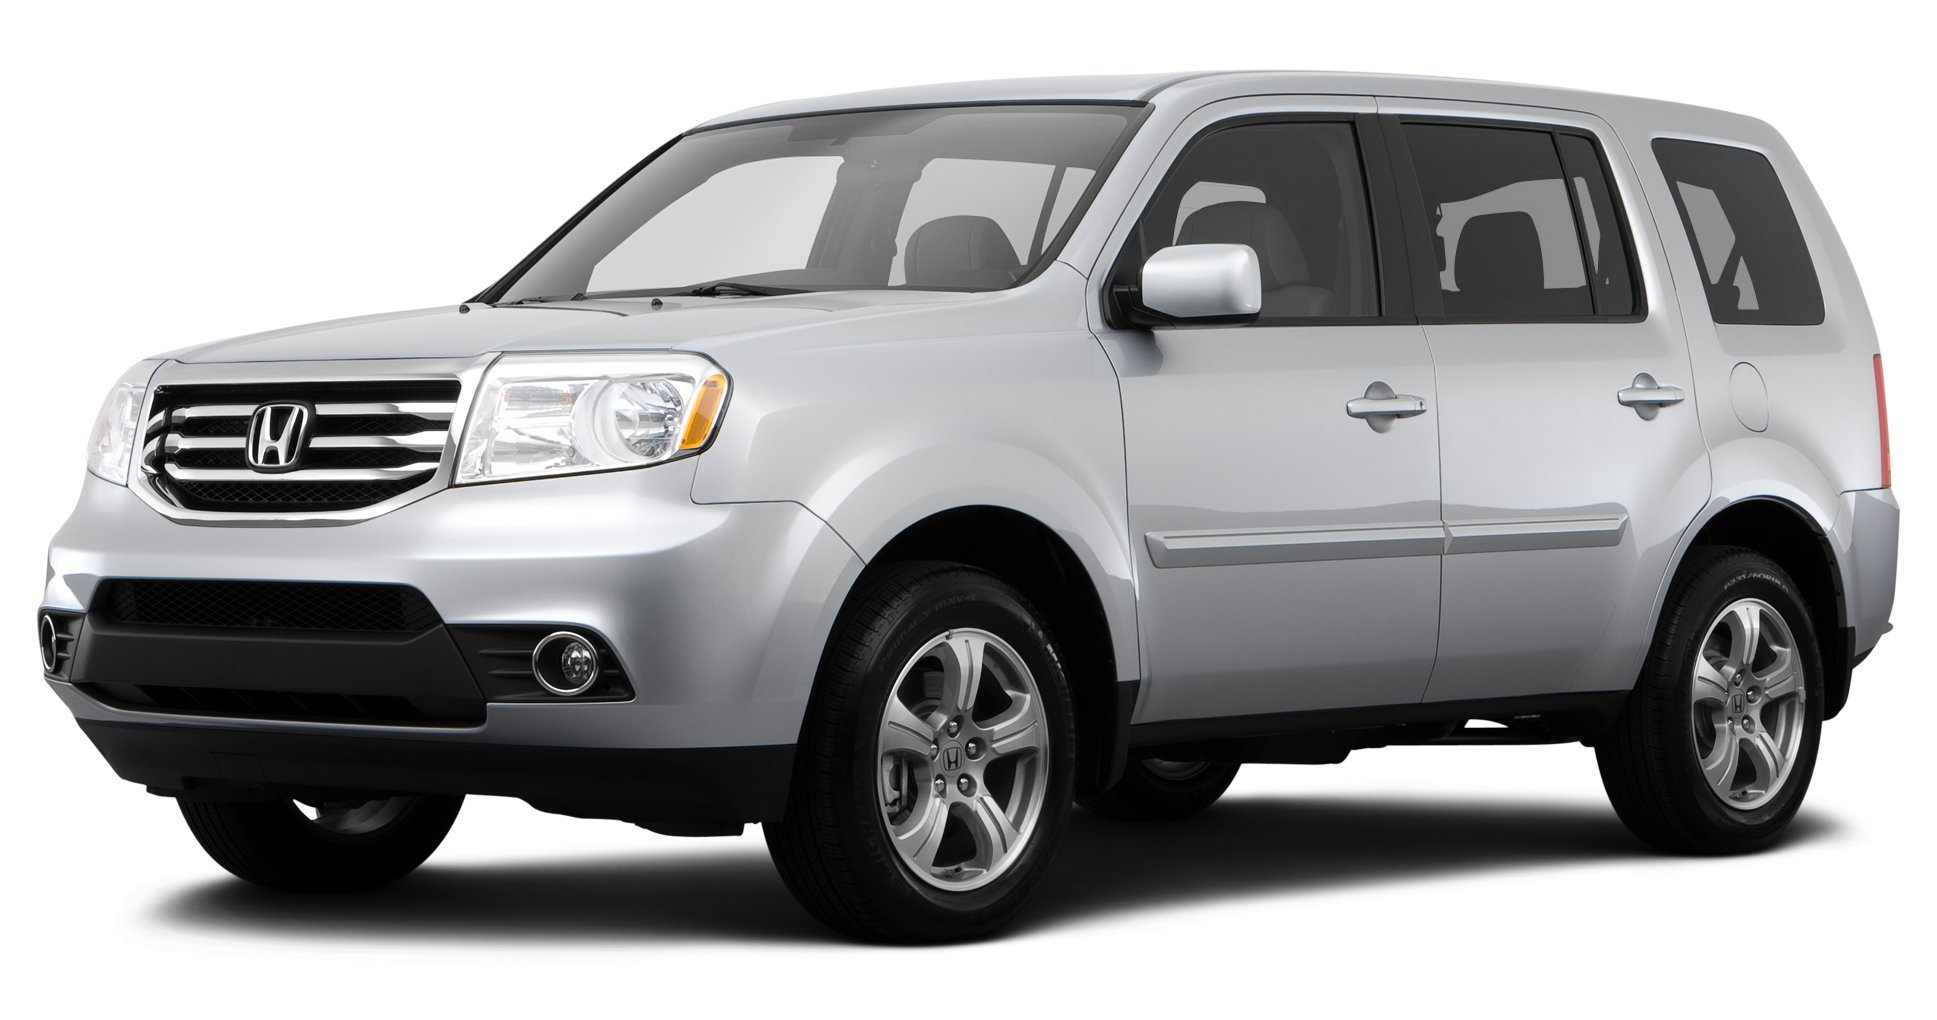 2014 honda pilot reviews images and specs for Honda pilot images